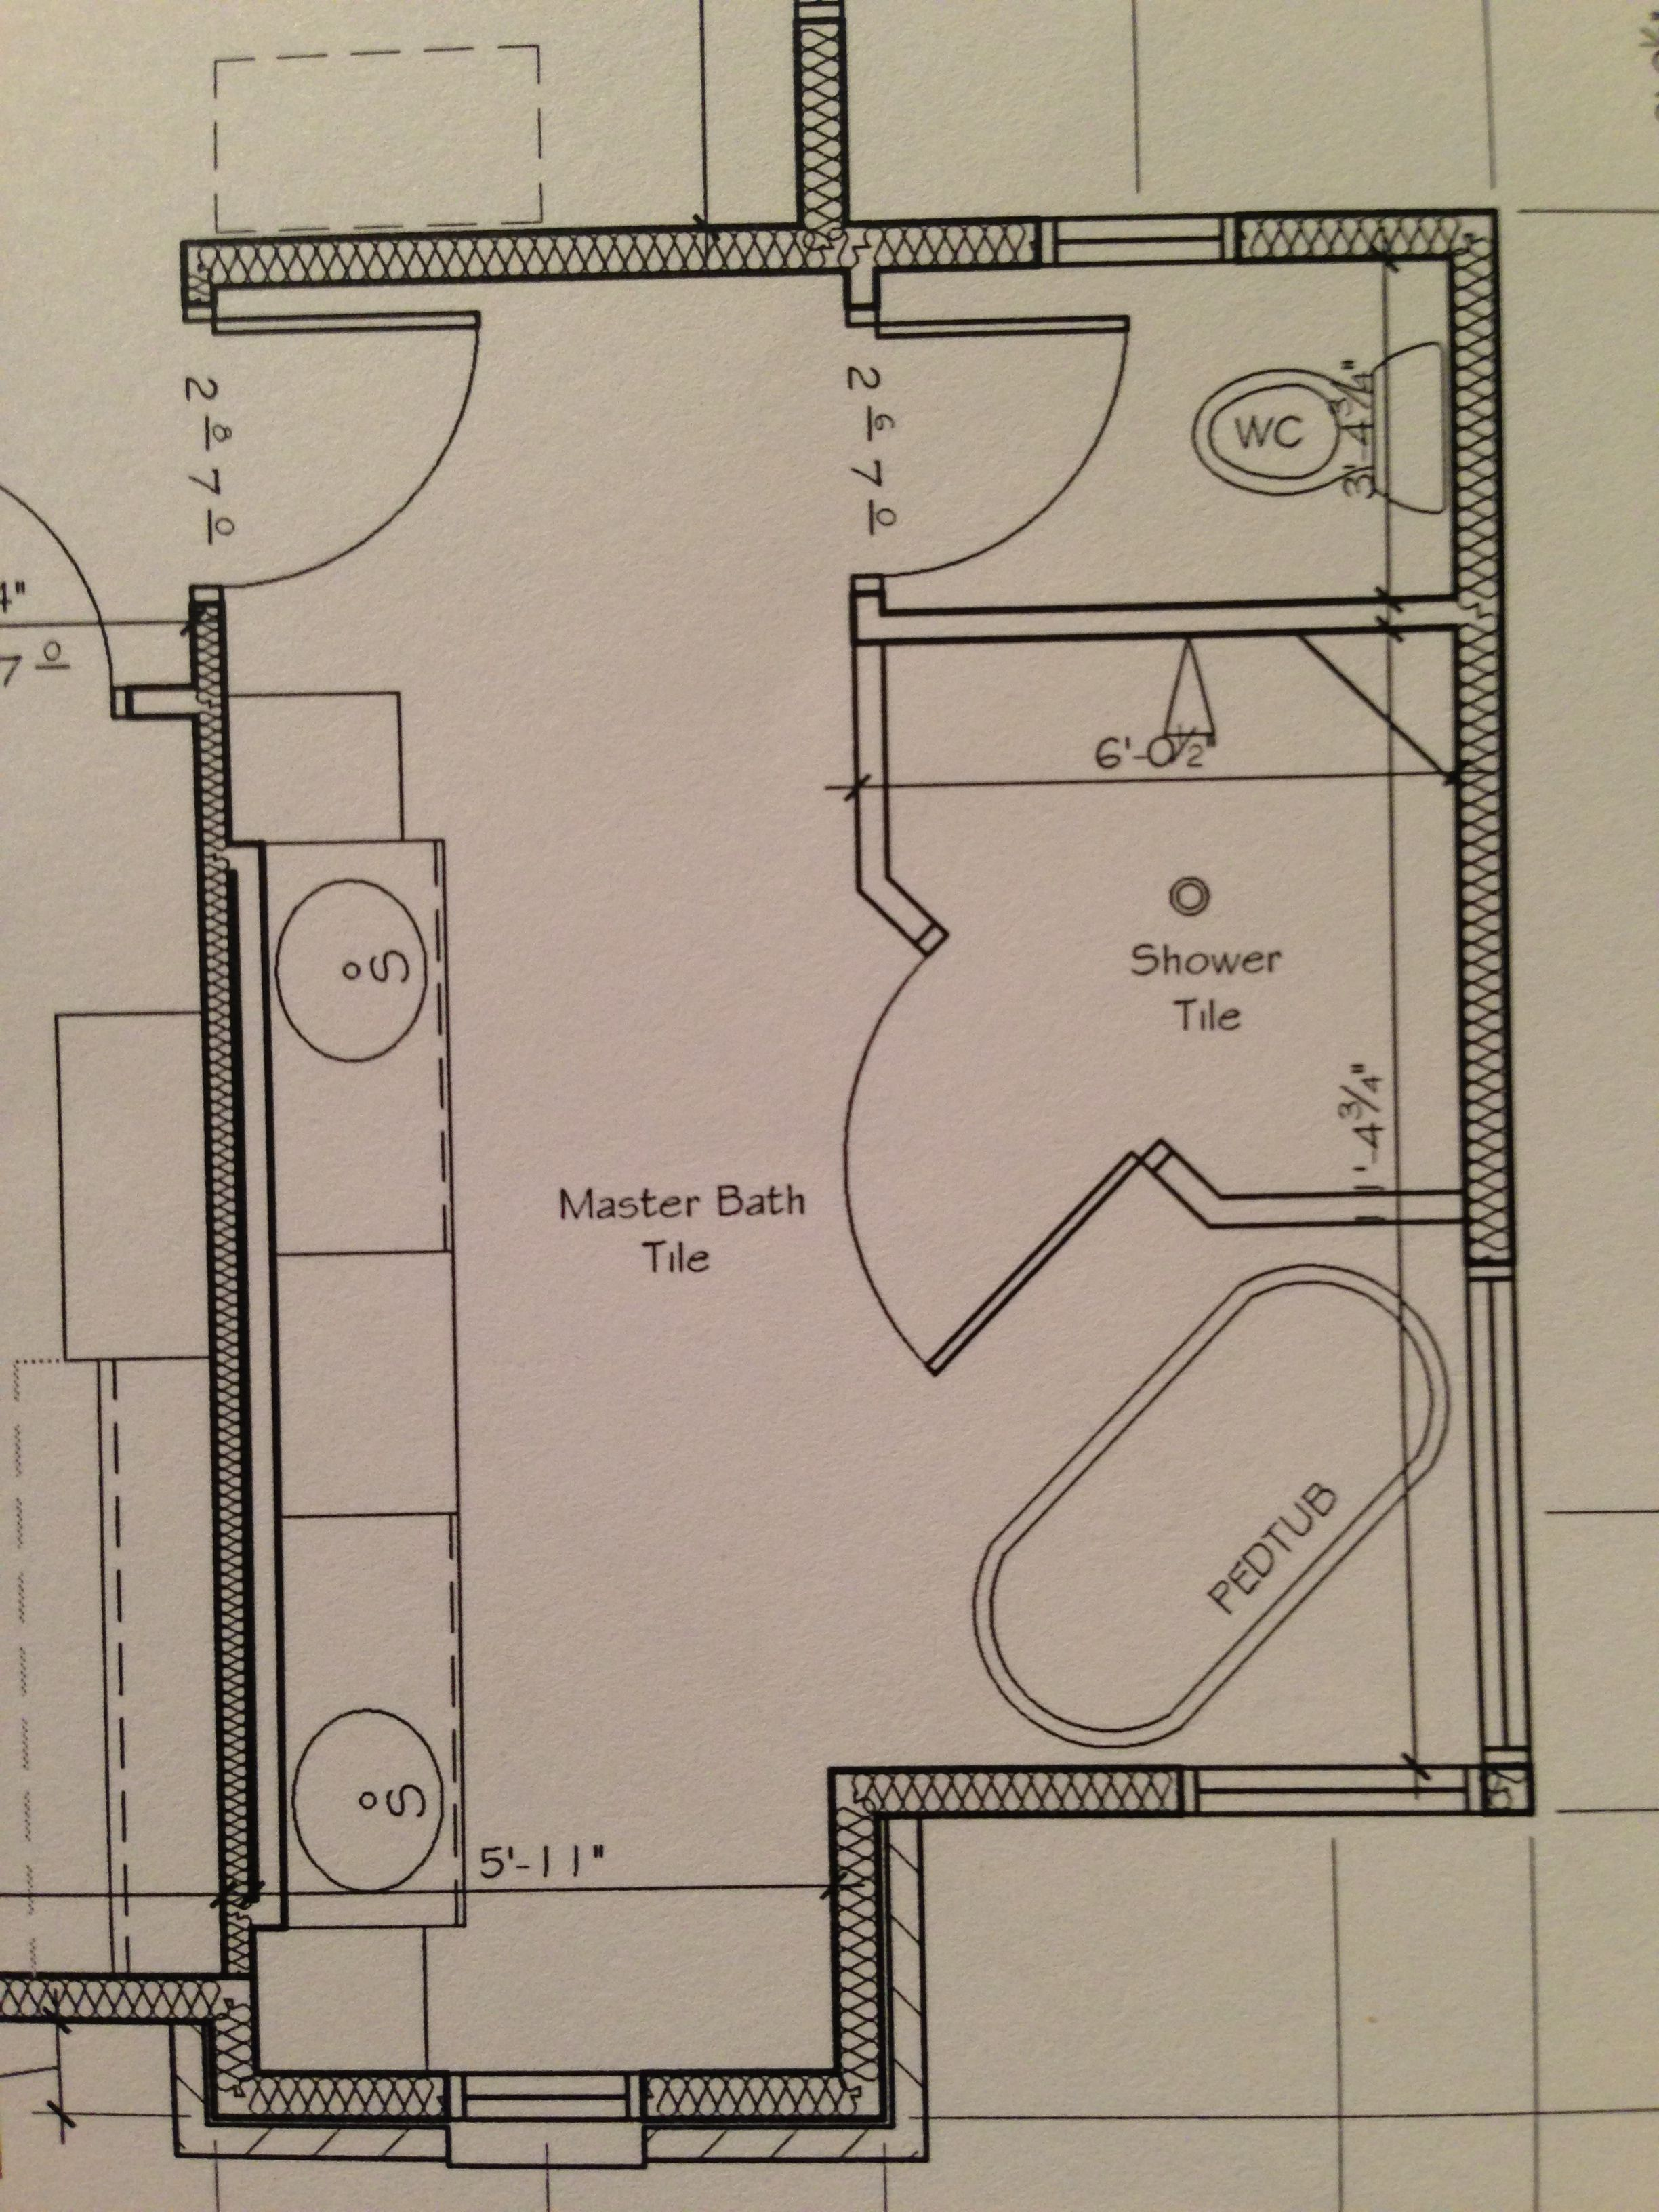 Make Sure To Plan For Towel Bars In Bath Floor Plan And Reinforce That Area  With